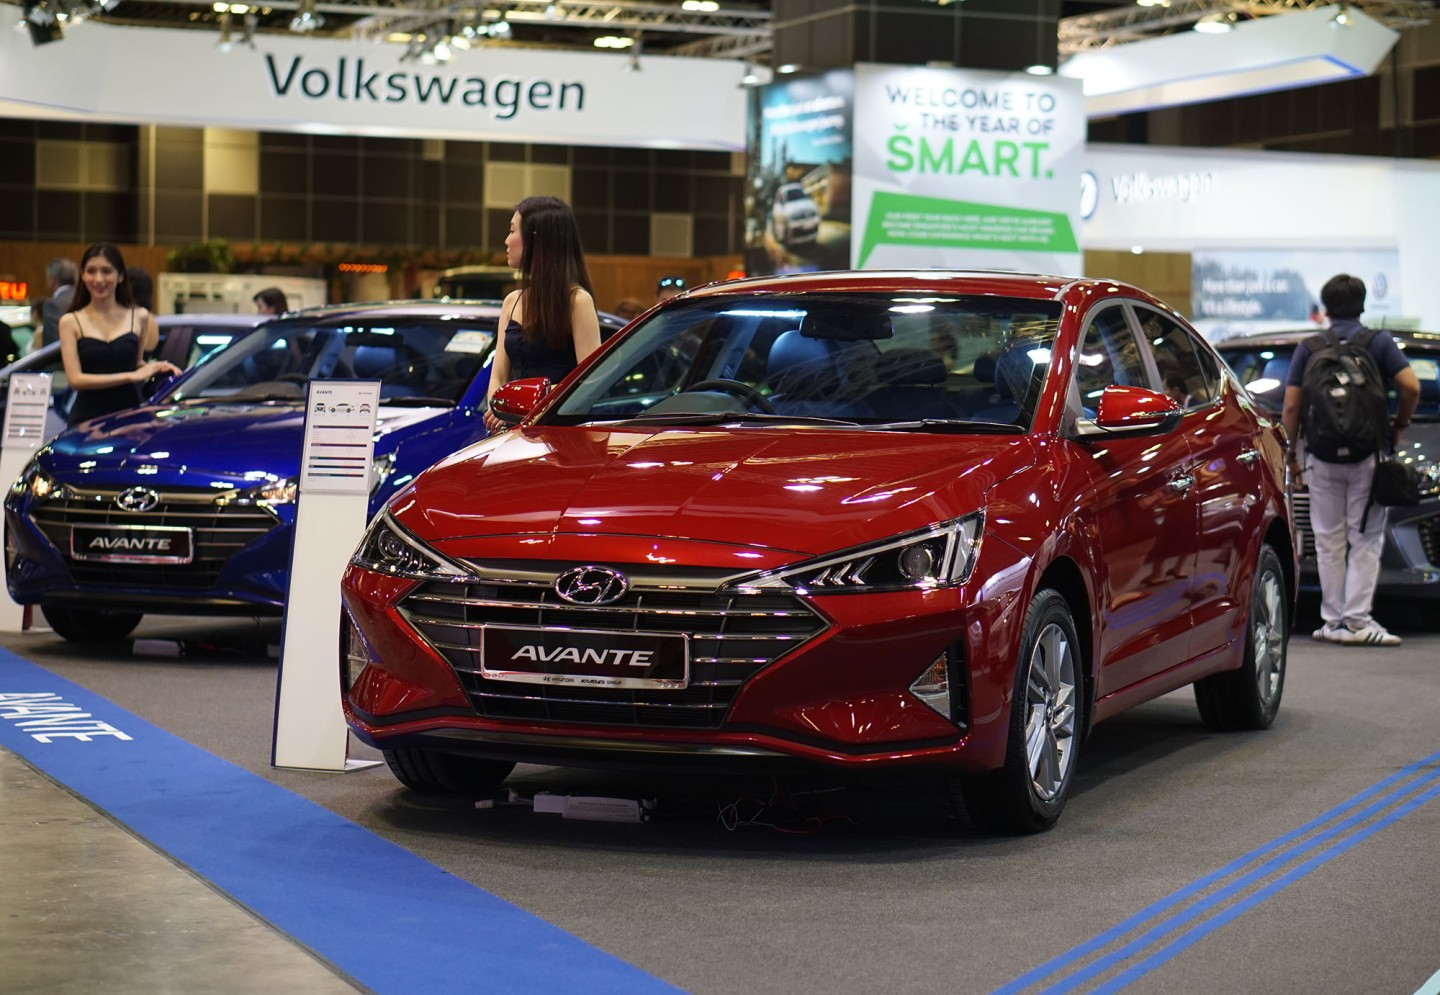 2019 Hyundai Elantra Facelift Makes ASEAN Debut In Singapore